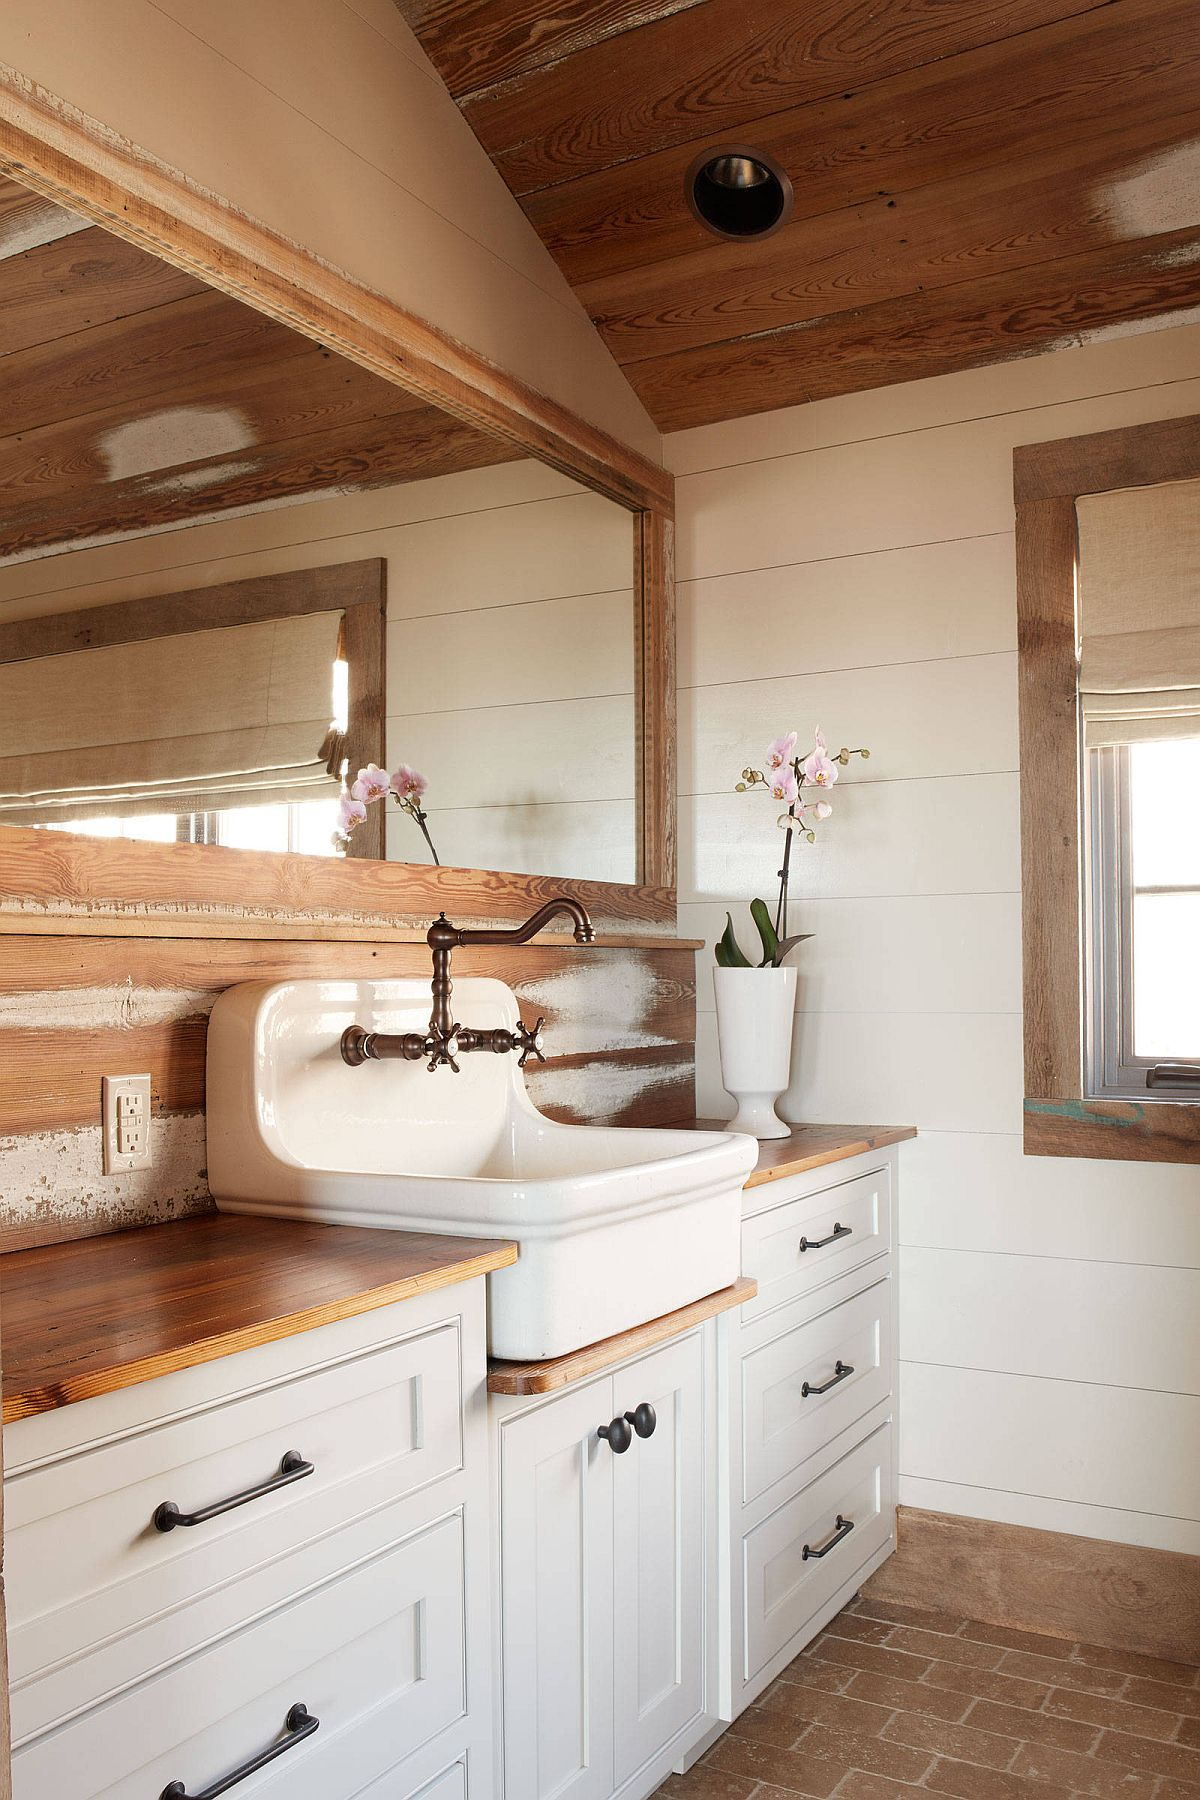 Rustic bathroom in white and wood feels cozy and inviting